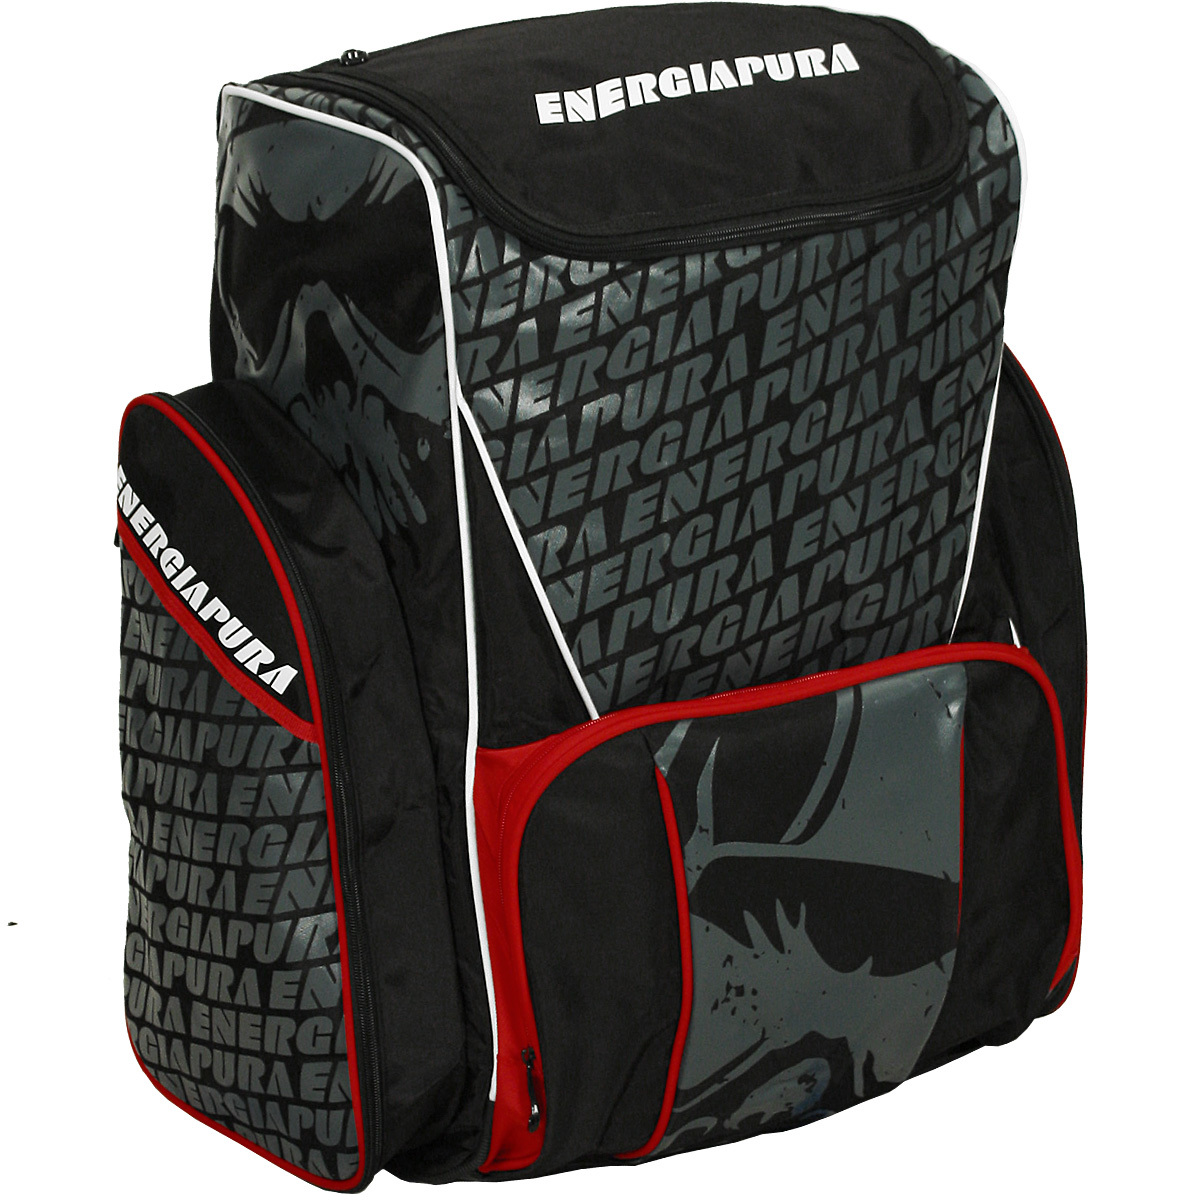 Energiapura Racer Bag SR